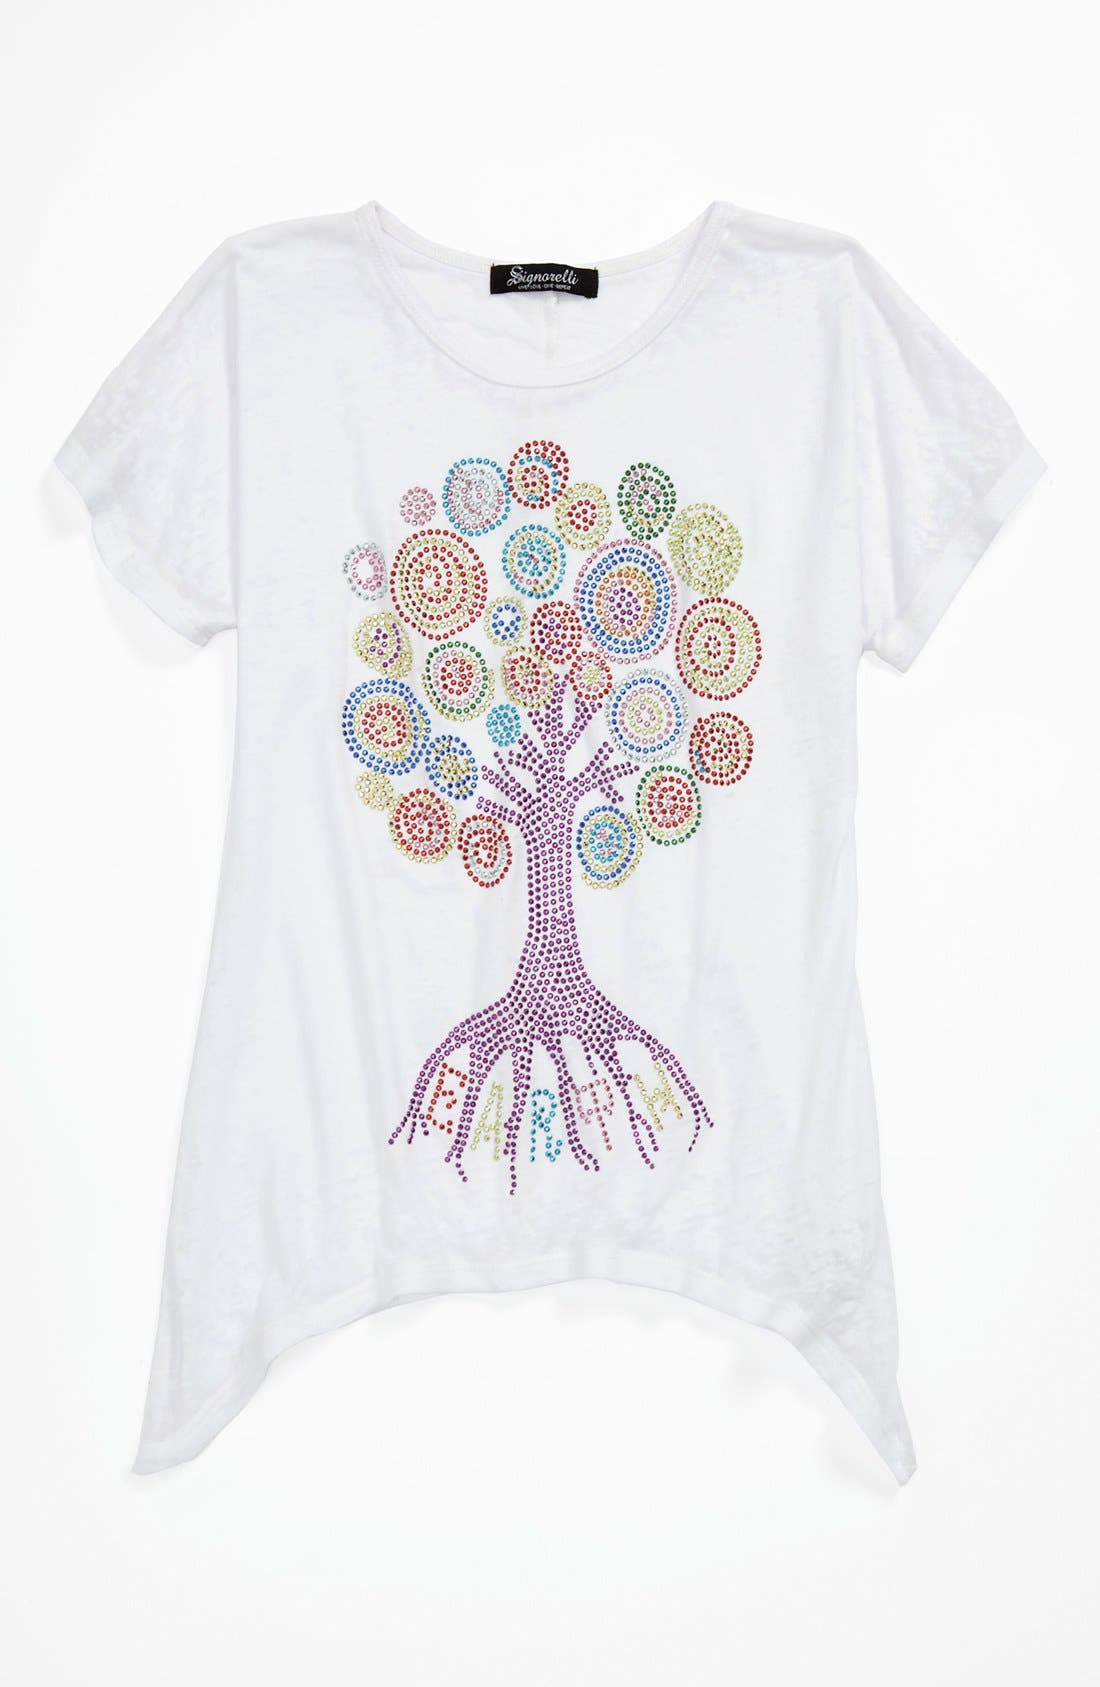 Main Image - Signorelli 'Earth' Tee (Big Girls)